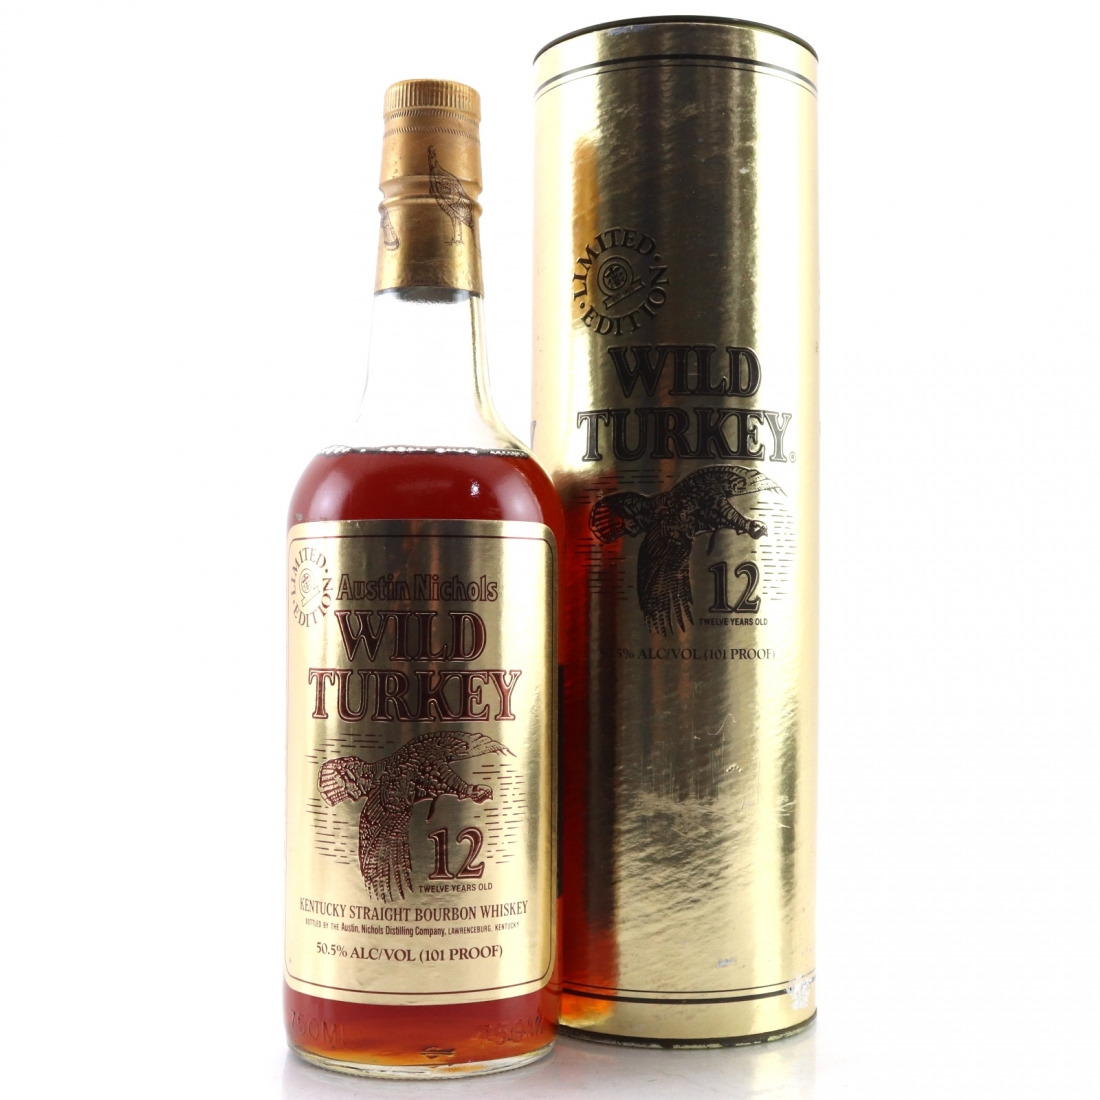 Wild Turkey 12 Year Old 101 Proof Limited Edition 1990s